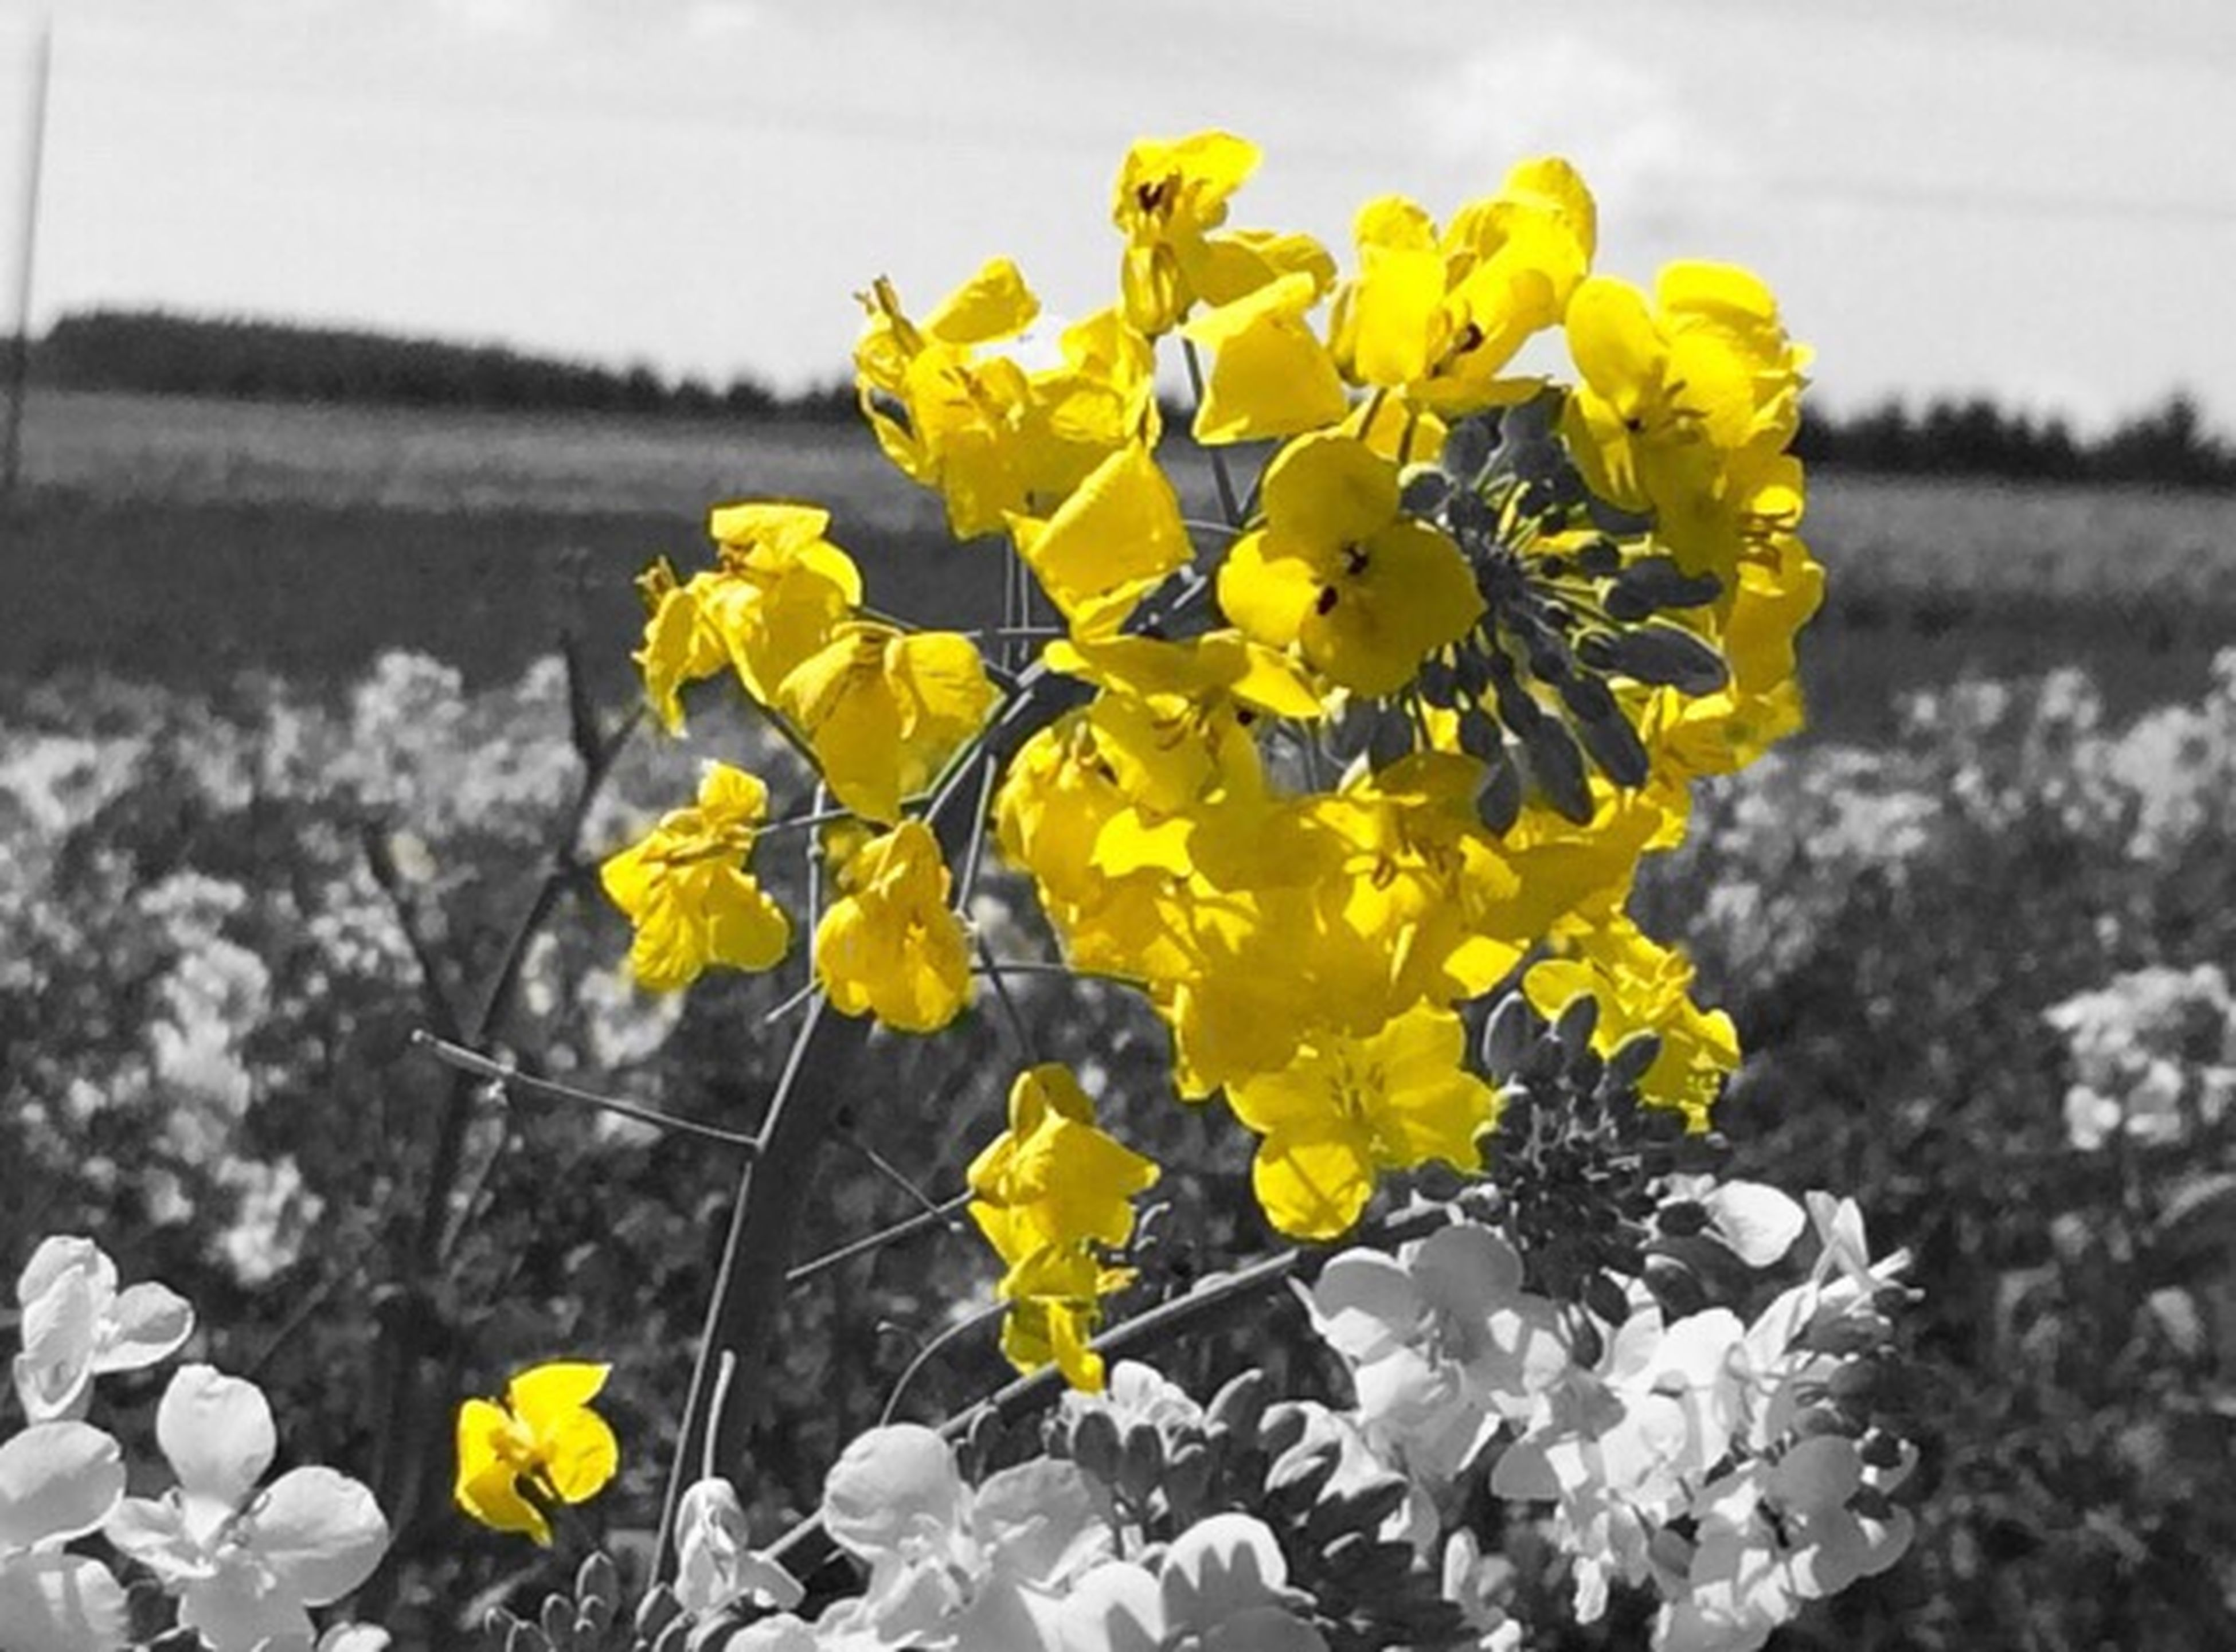 flower, yellow, fragility, freshness, petal, growth, beauty in nature, plant, flower head, nature, blooming, focus on foreground, field, close-up, in bloom, stem, blossom, day, springtime, sky